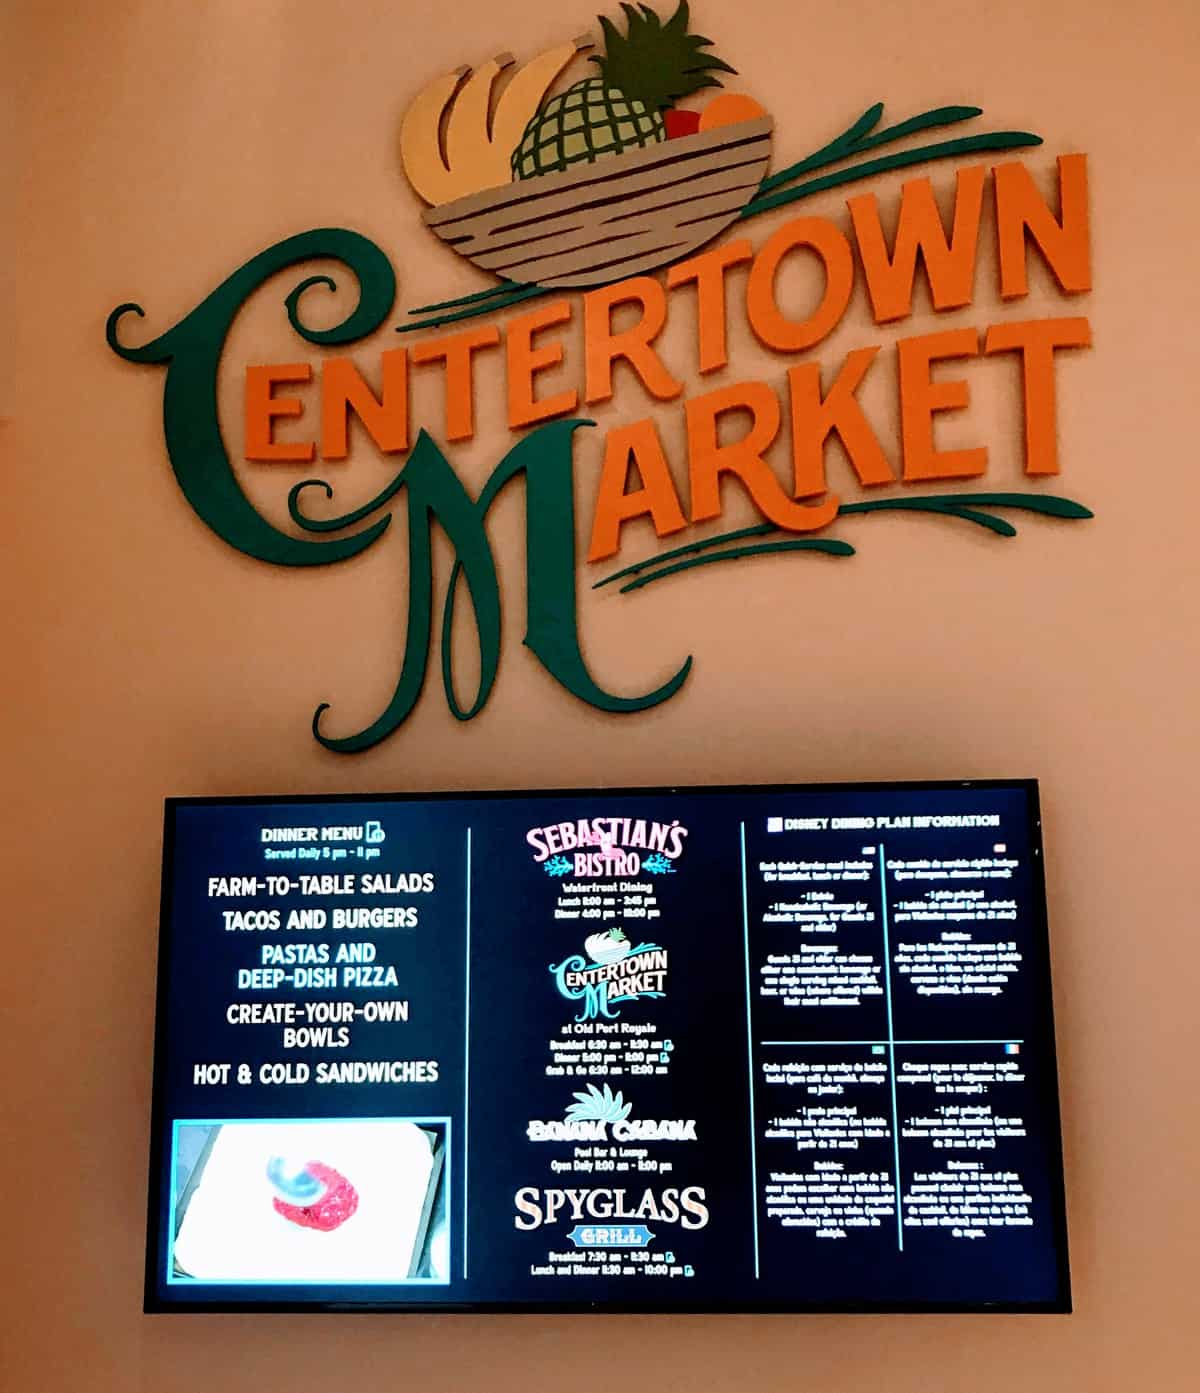 Caribbean Beach Resort - Centertown Market (breakfast)